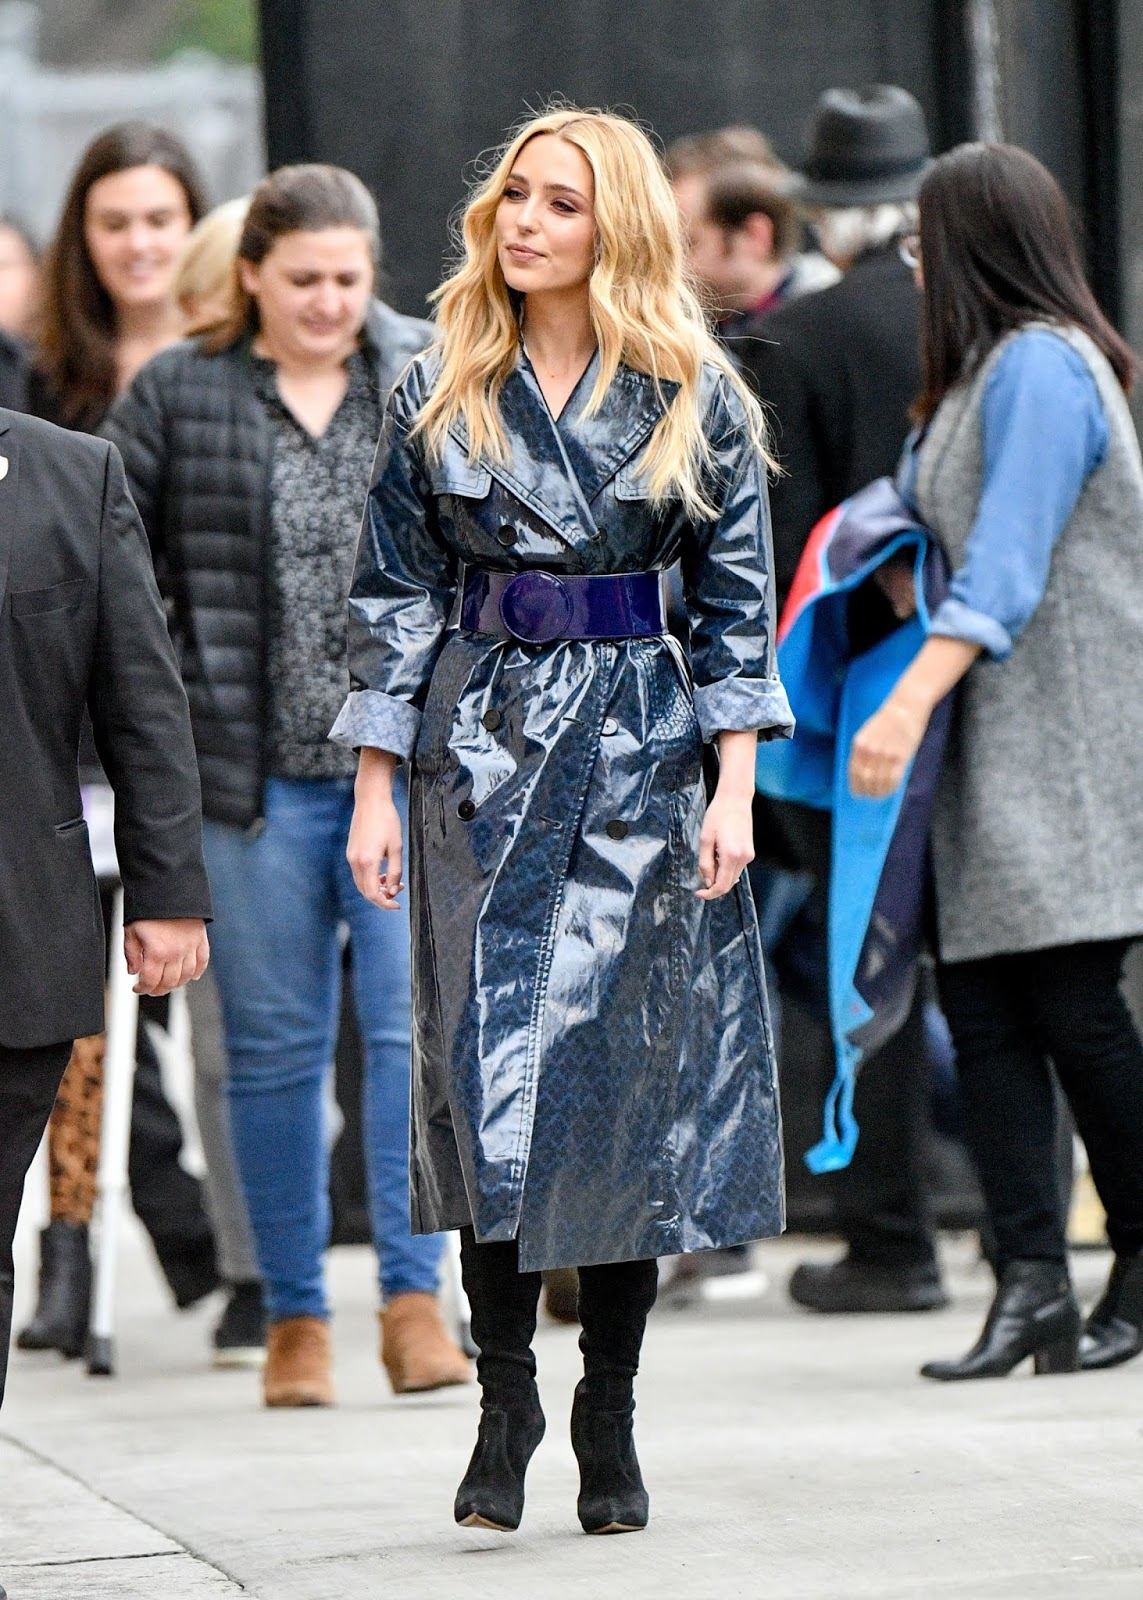 Jessica Rothe arrives at Jimmy Kimmel Live in Los Angeles - 02/13/2019